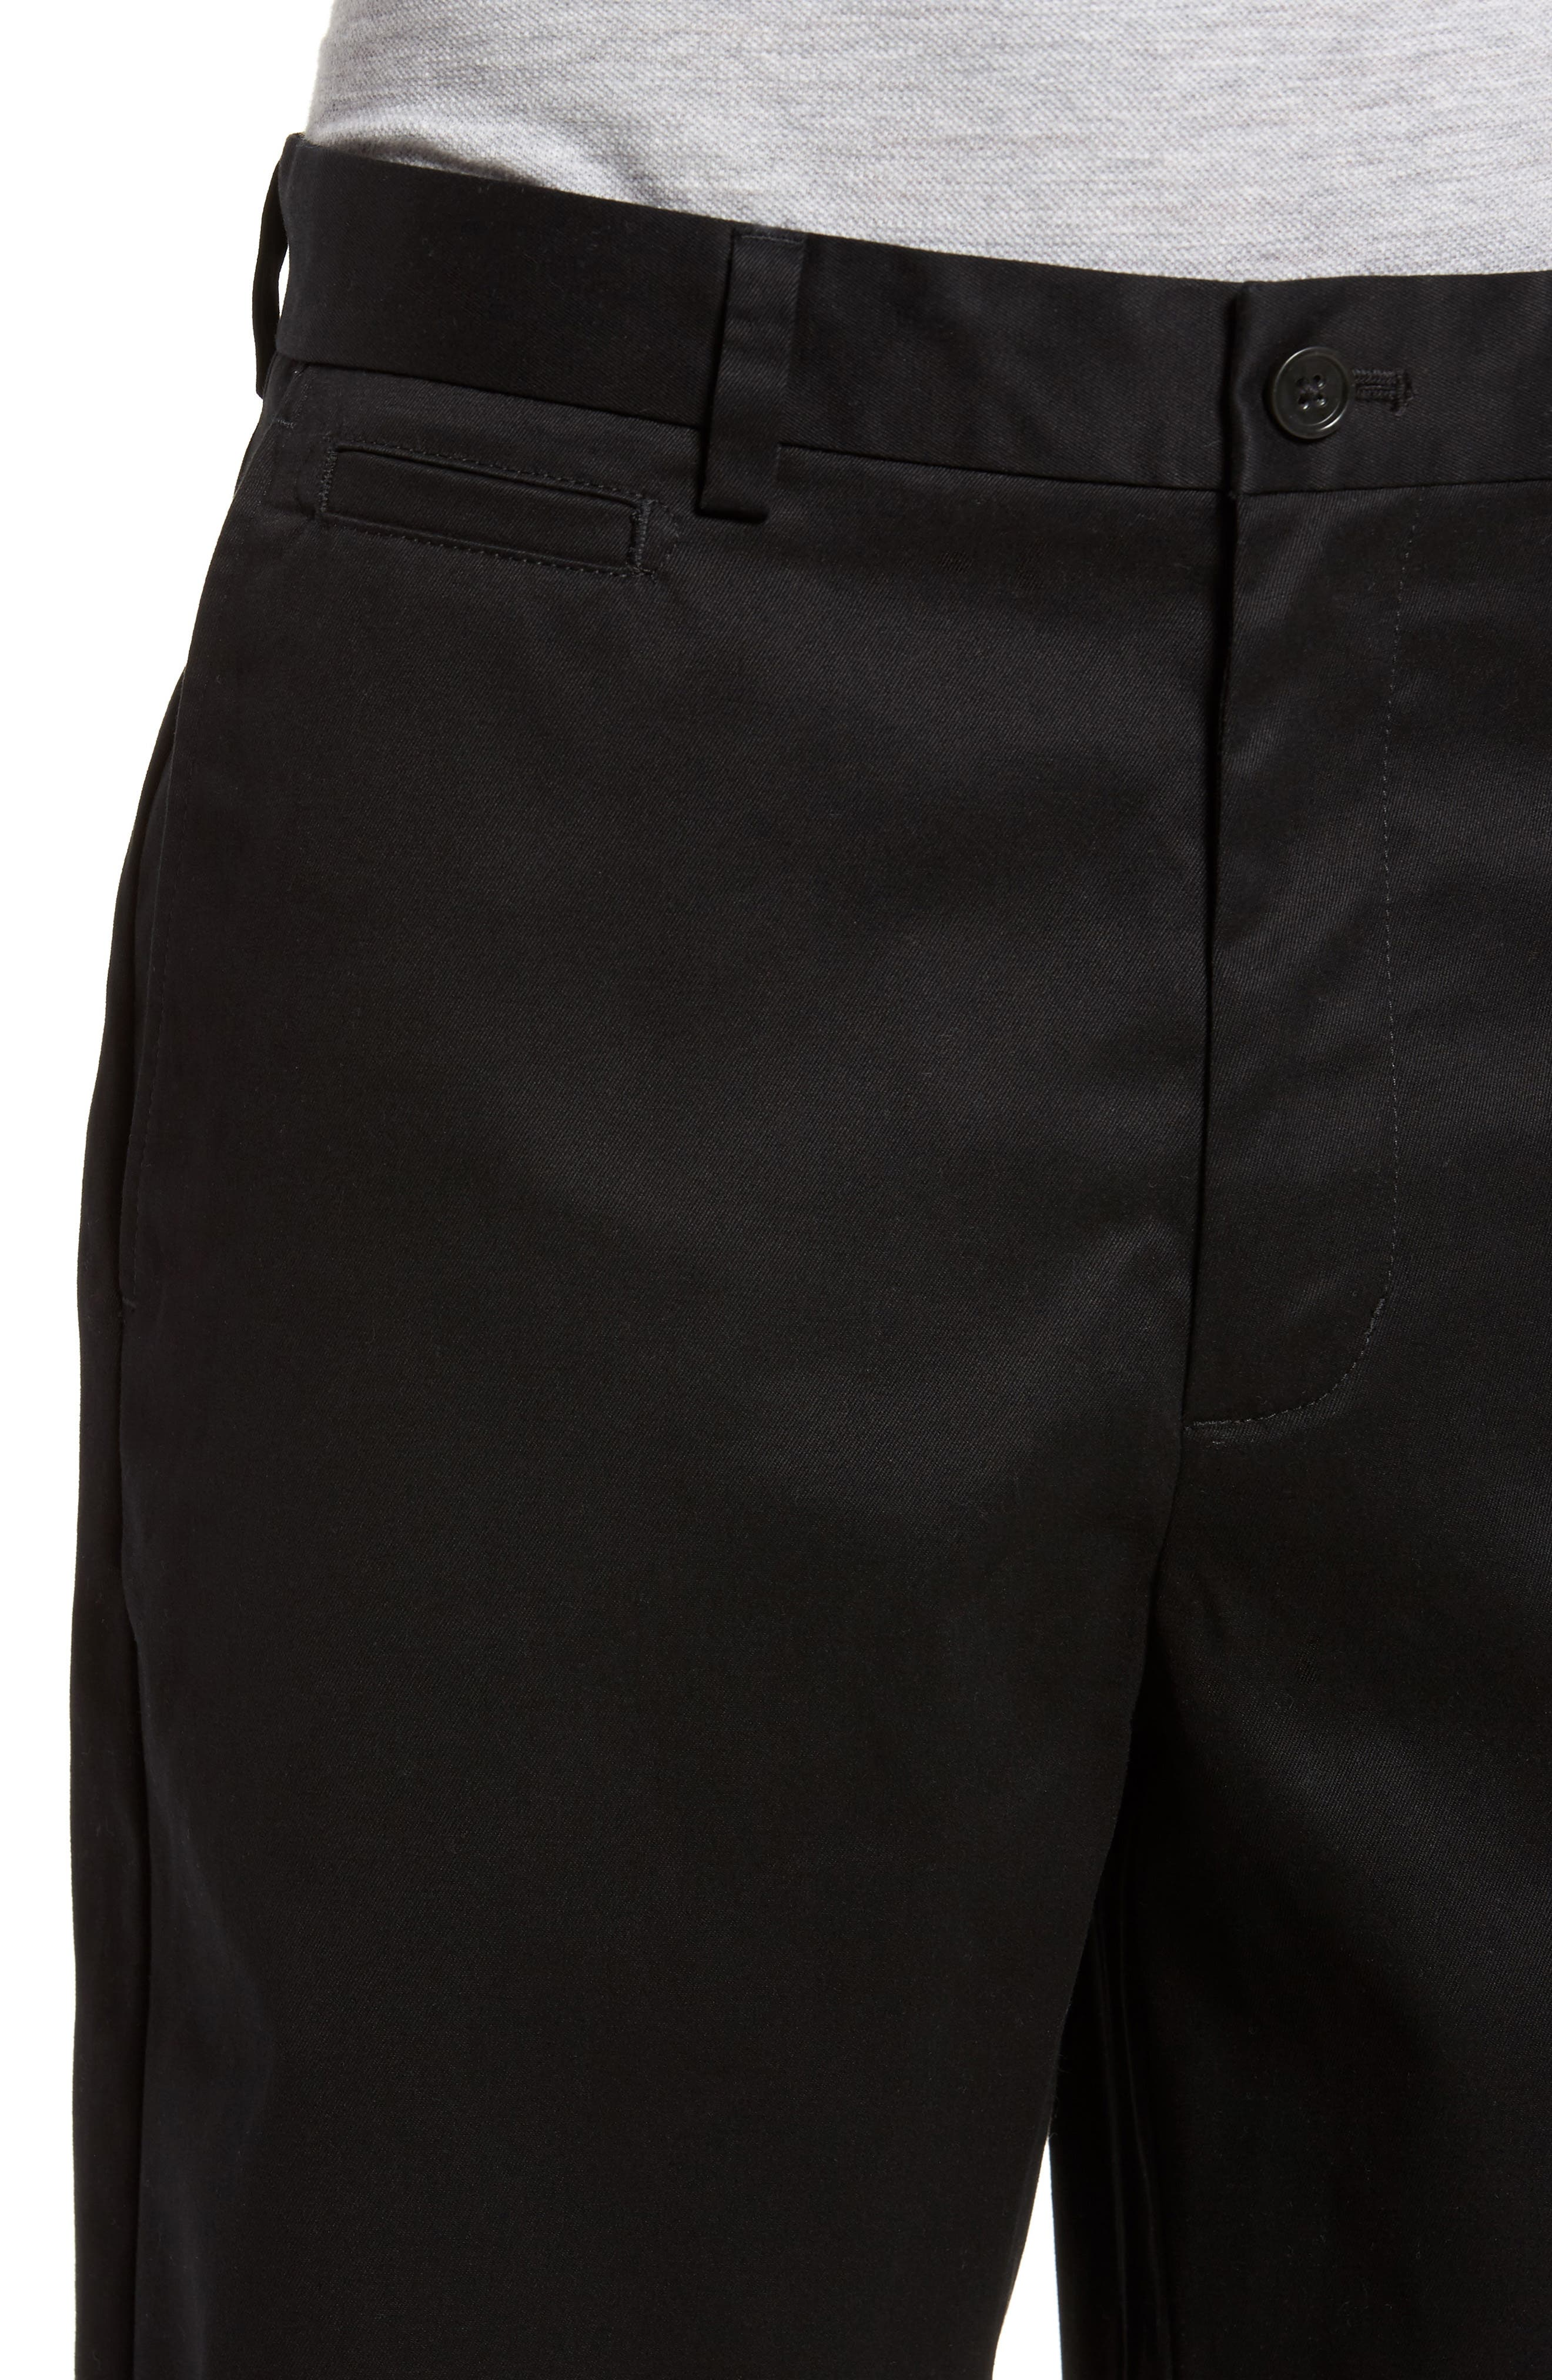 Smartcare<sup>™</sup> Flat Front Shorts,                             Alternate thumbnail 4, color,                             BLACK